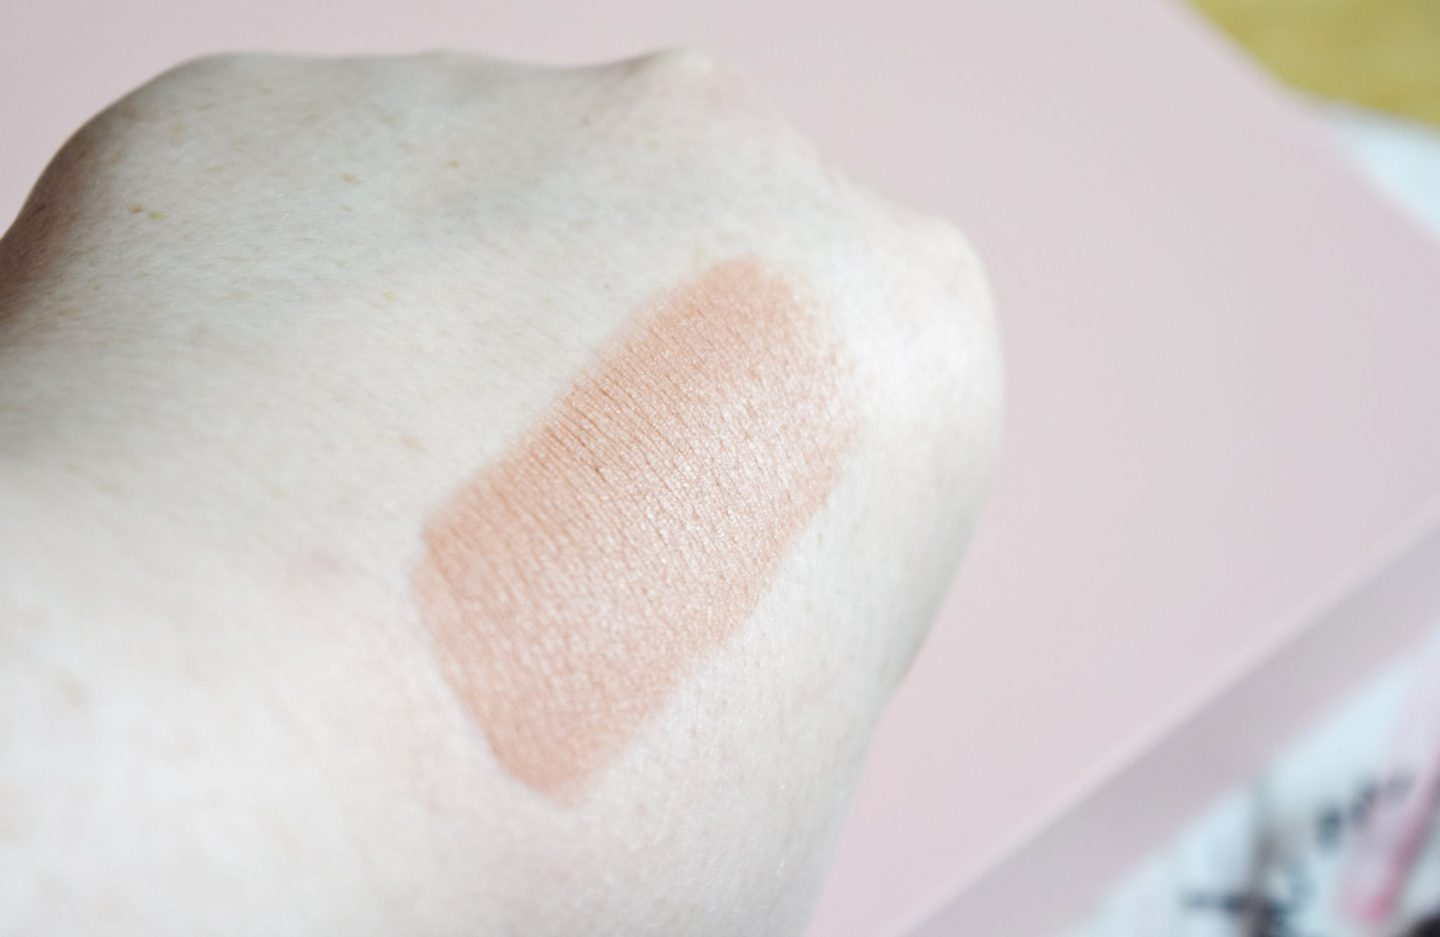 ryza Beauty Velvet Ribbon Lipstick in Warm Nude swatch